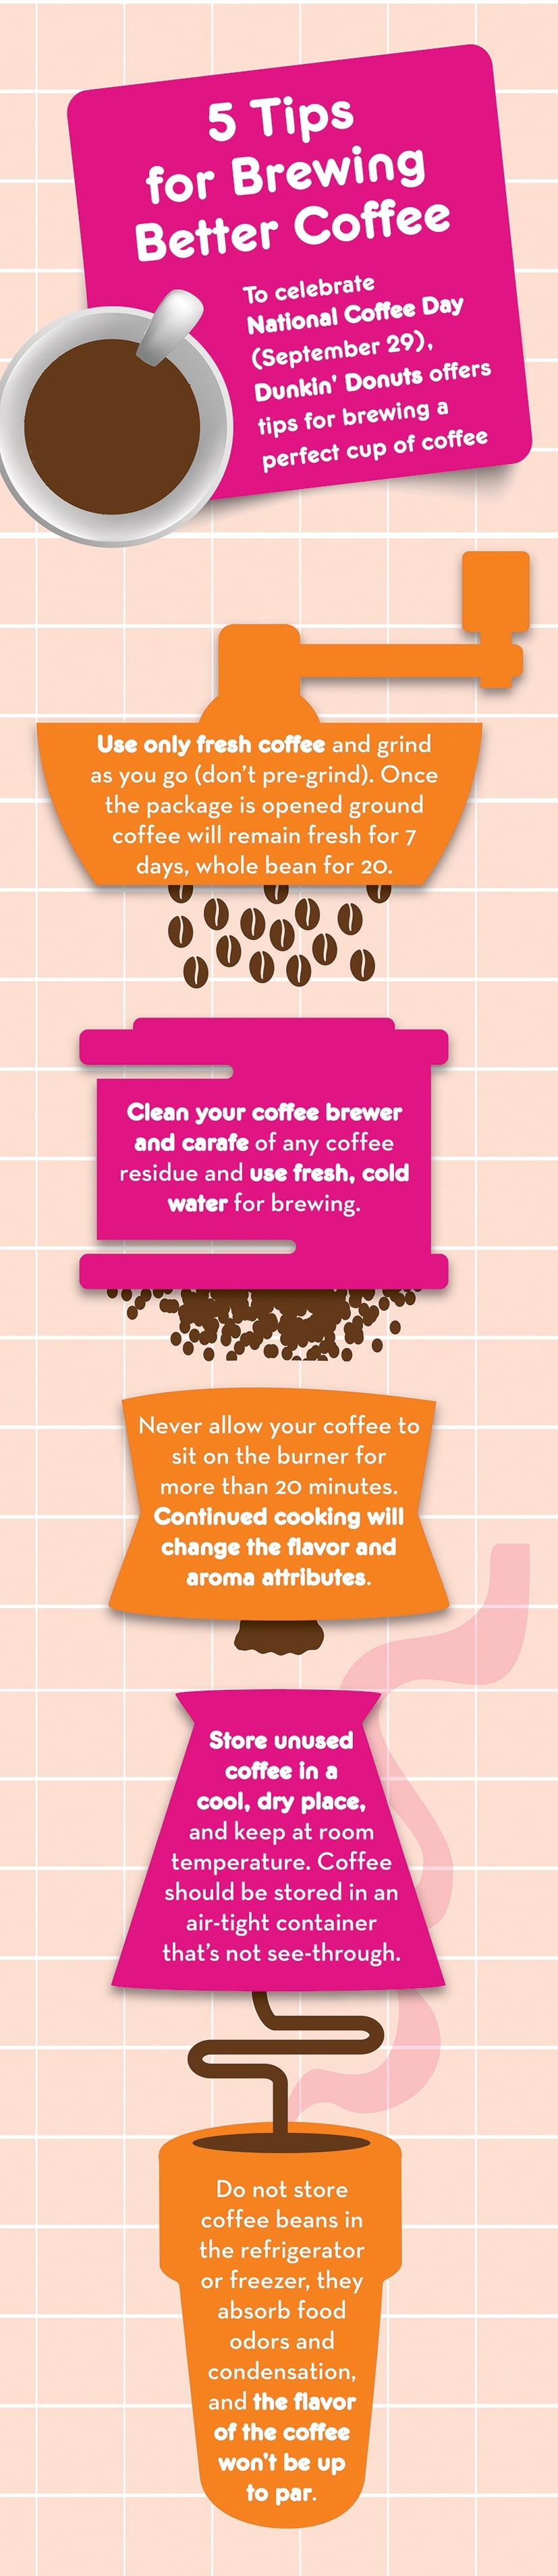 coffee-brewing-tips-guide-infographic